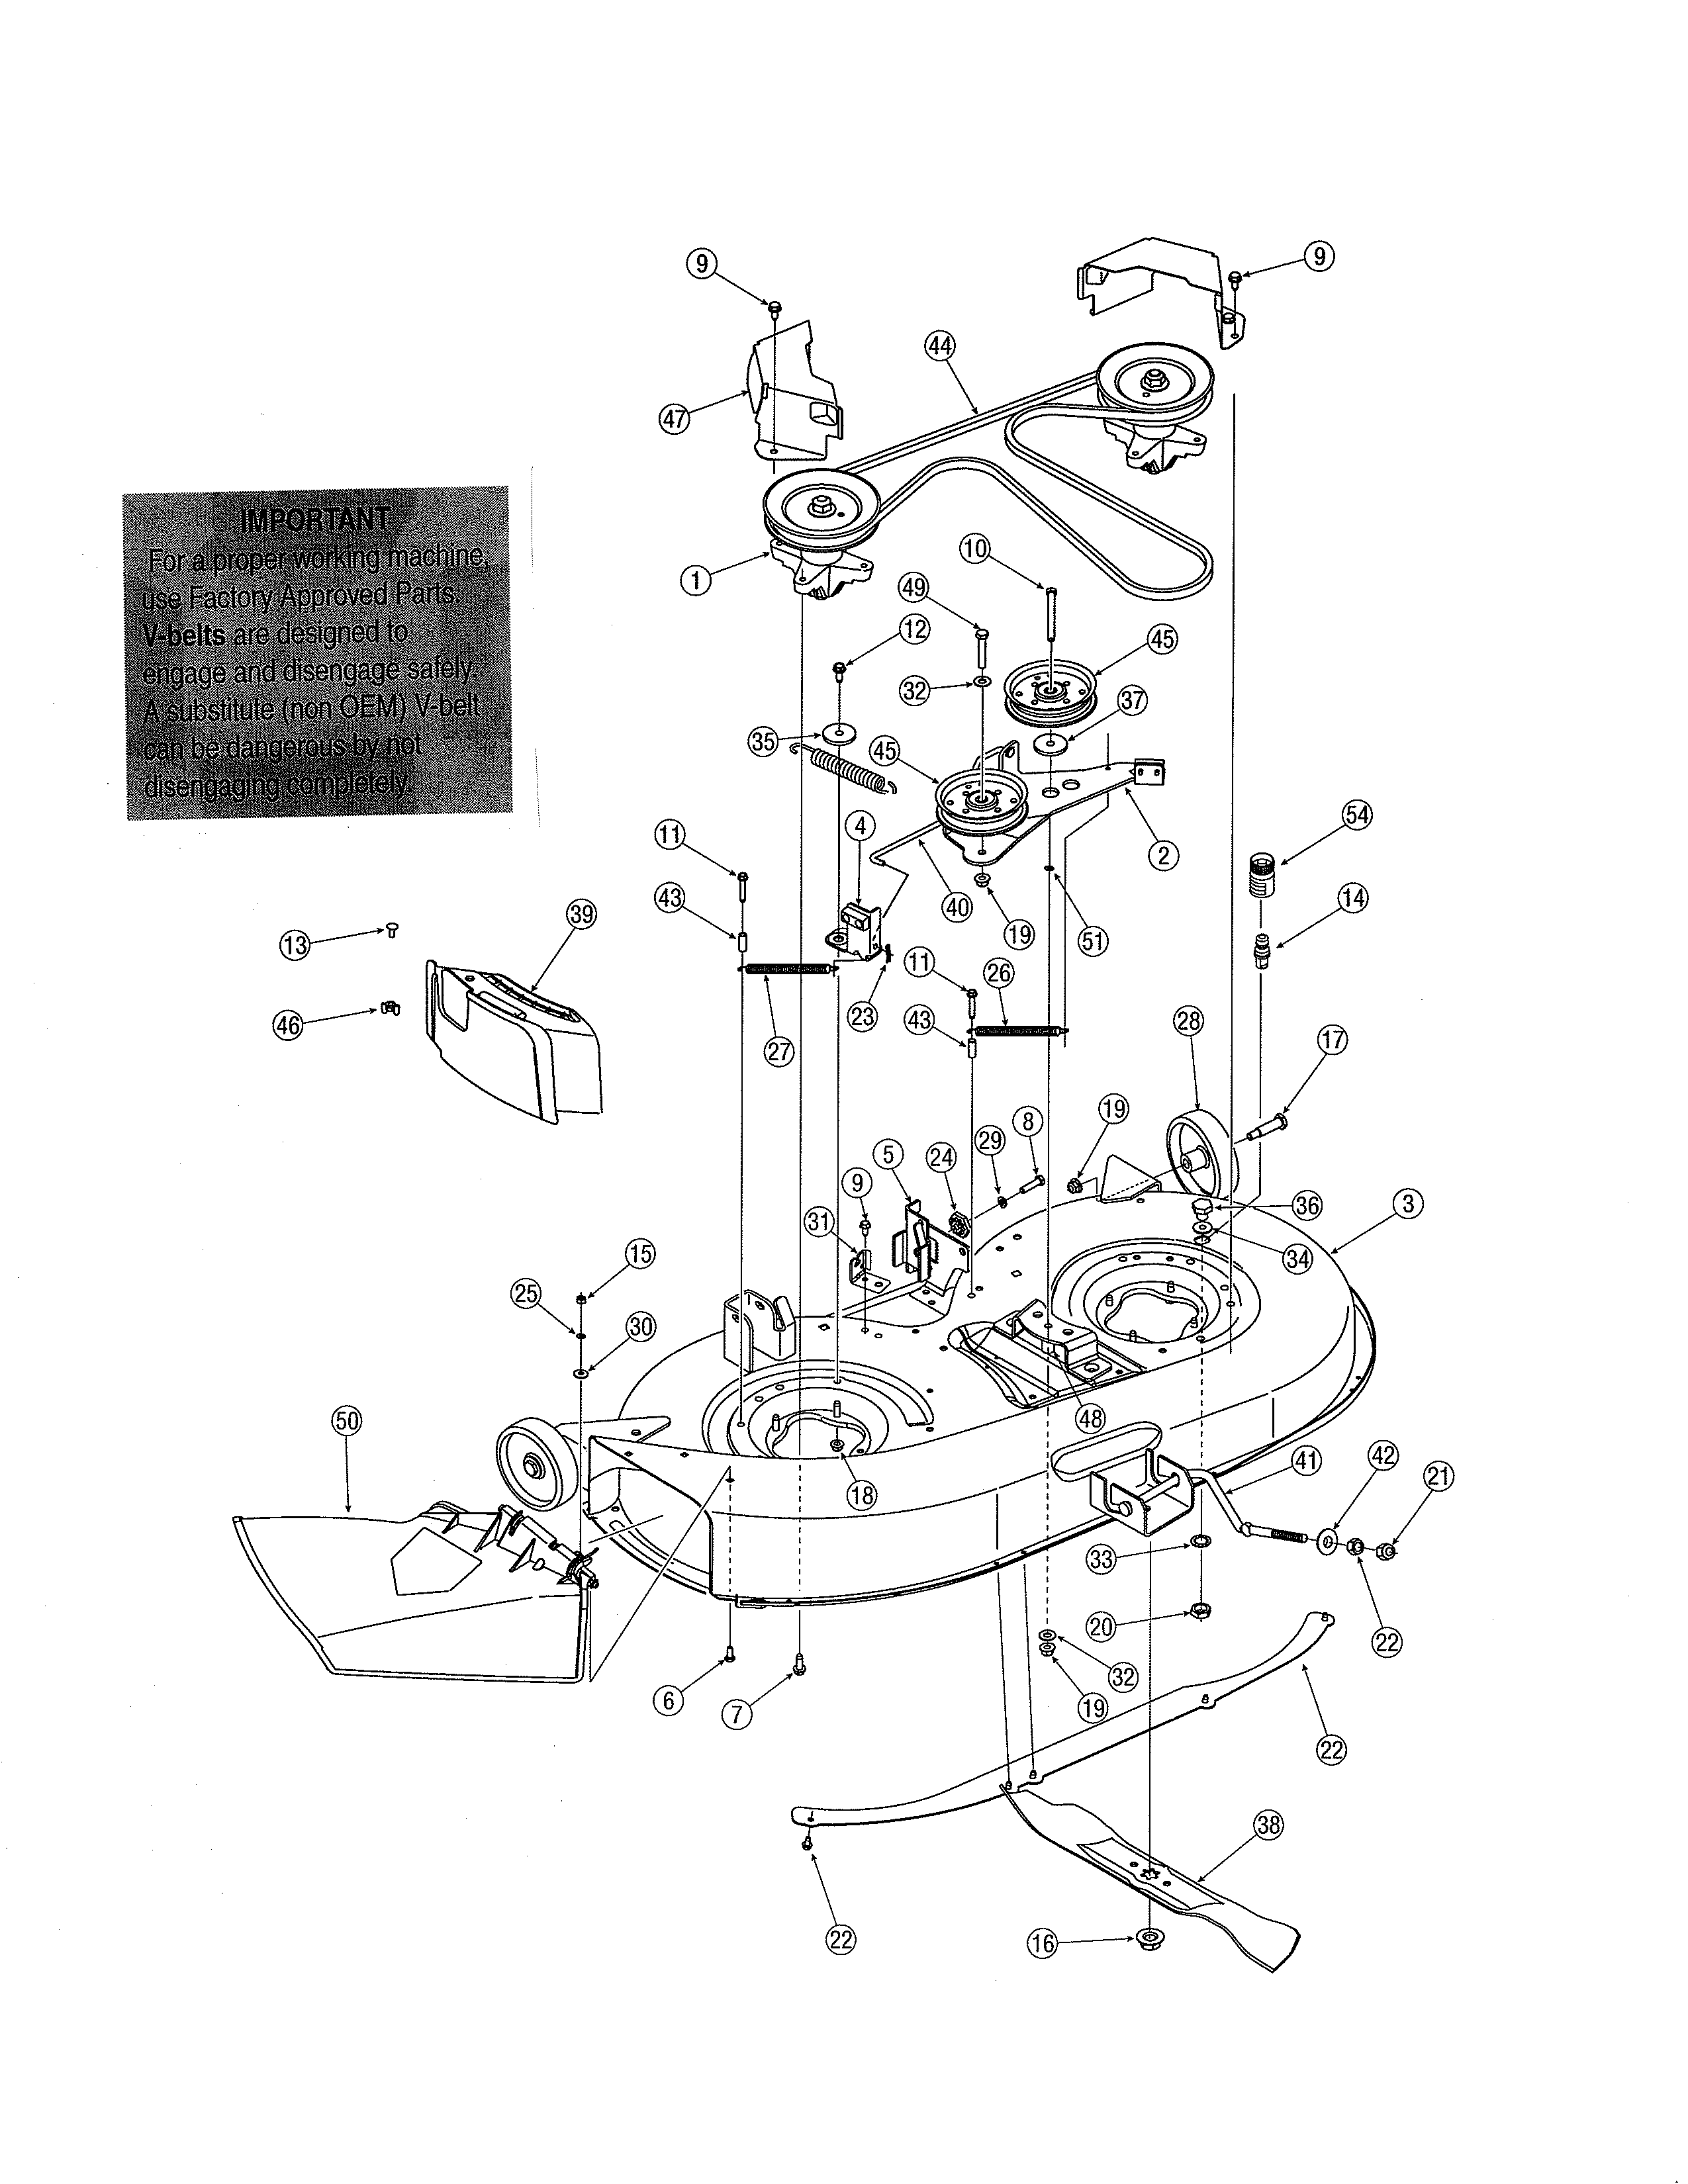 Huskee 13ad771g731 Wiring Diagram